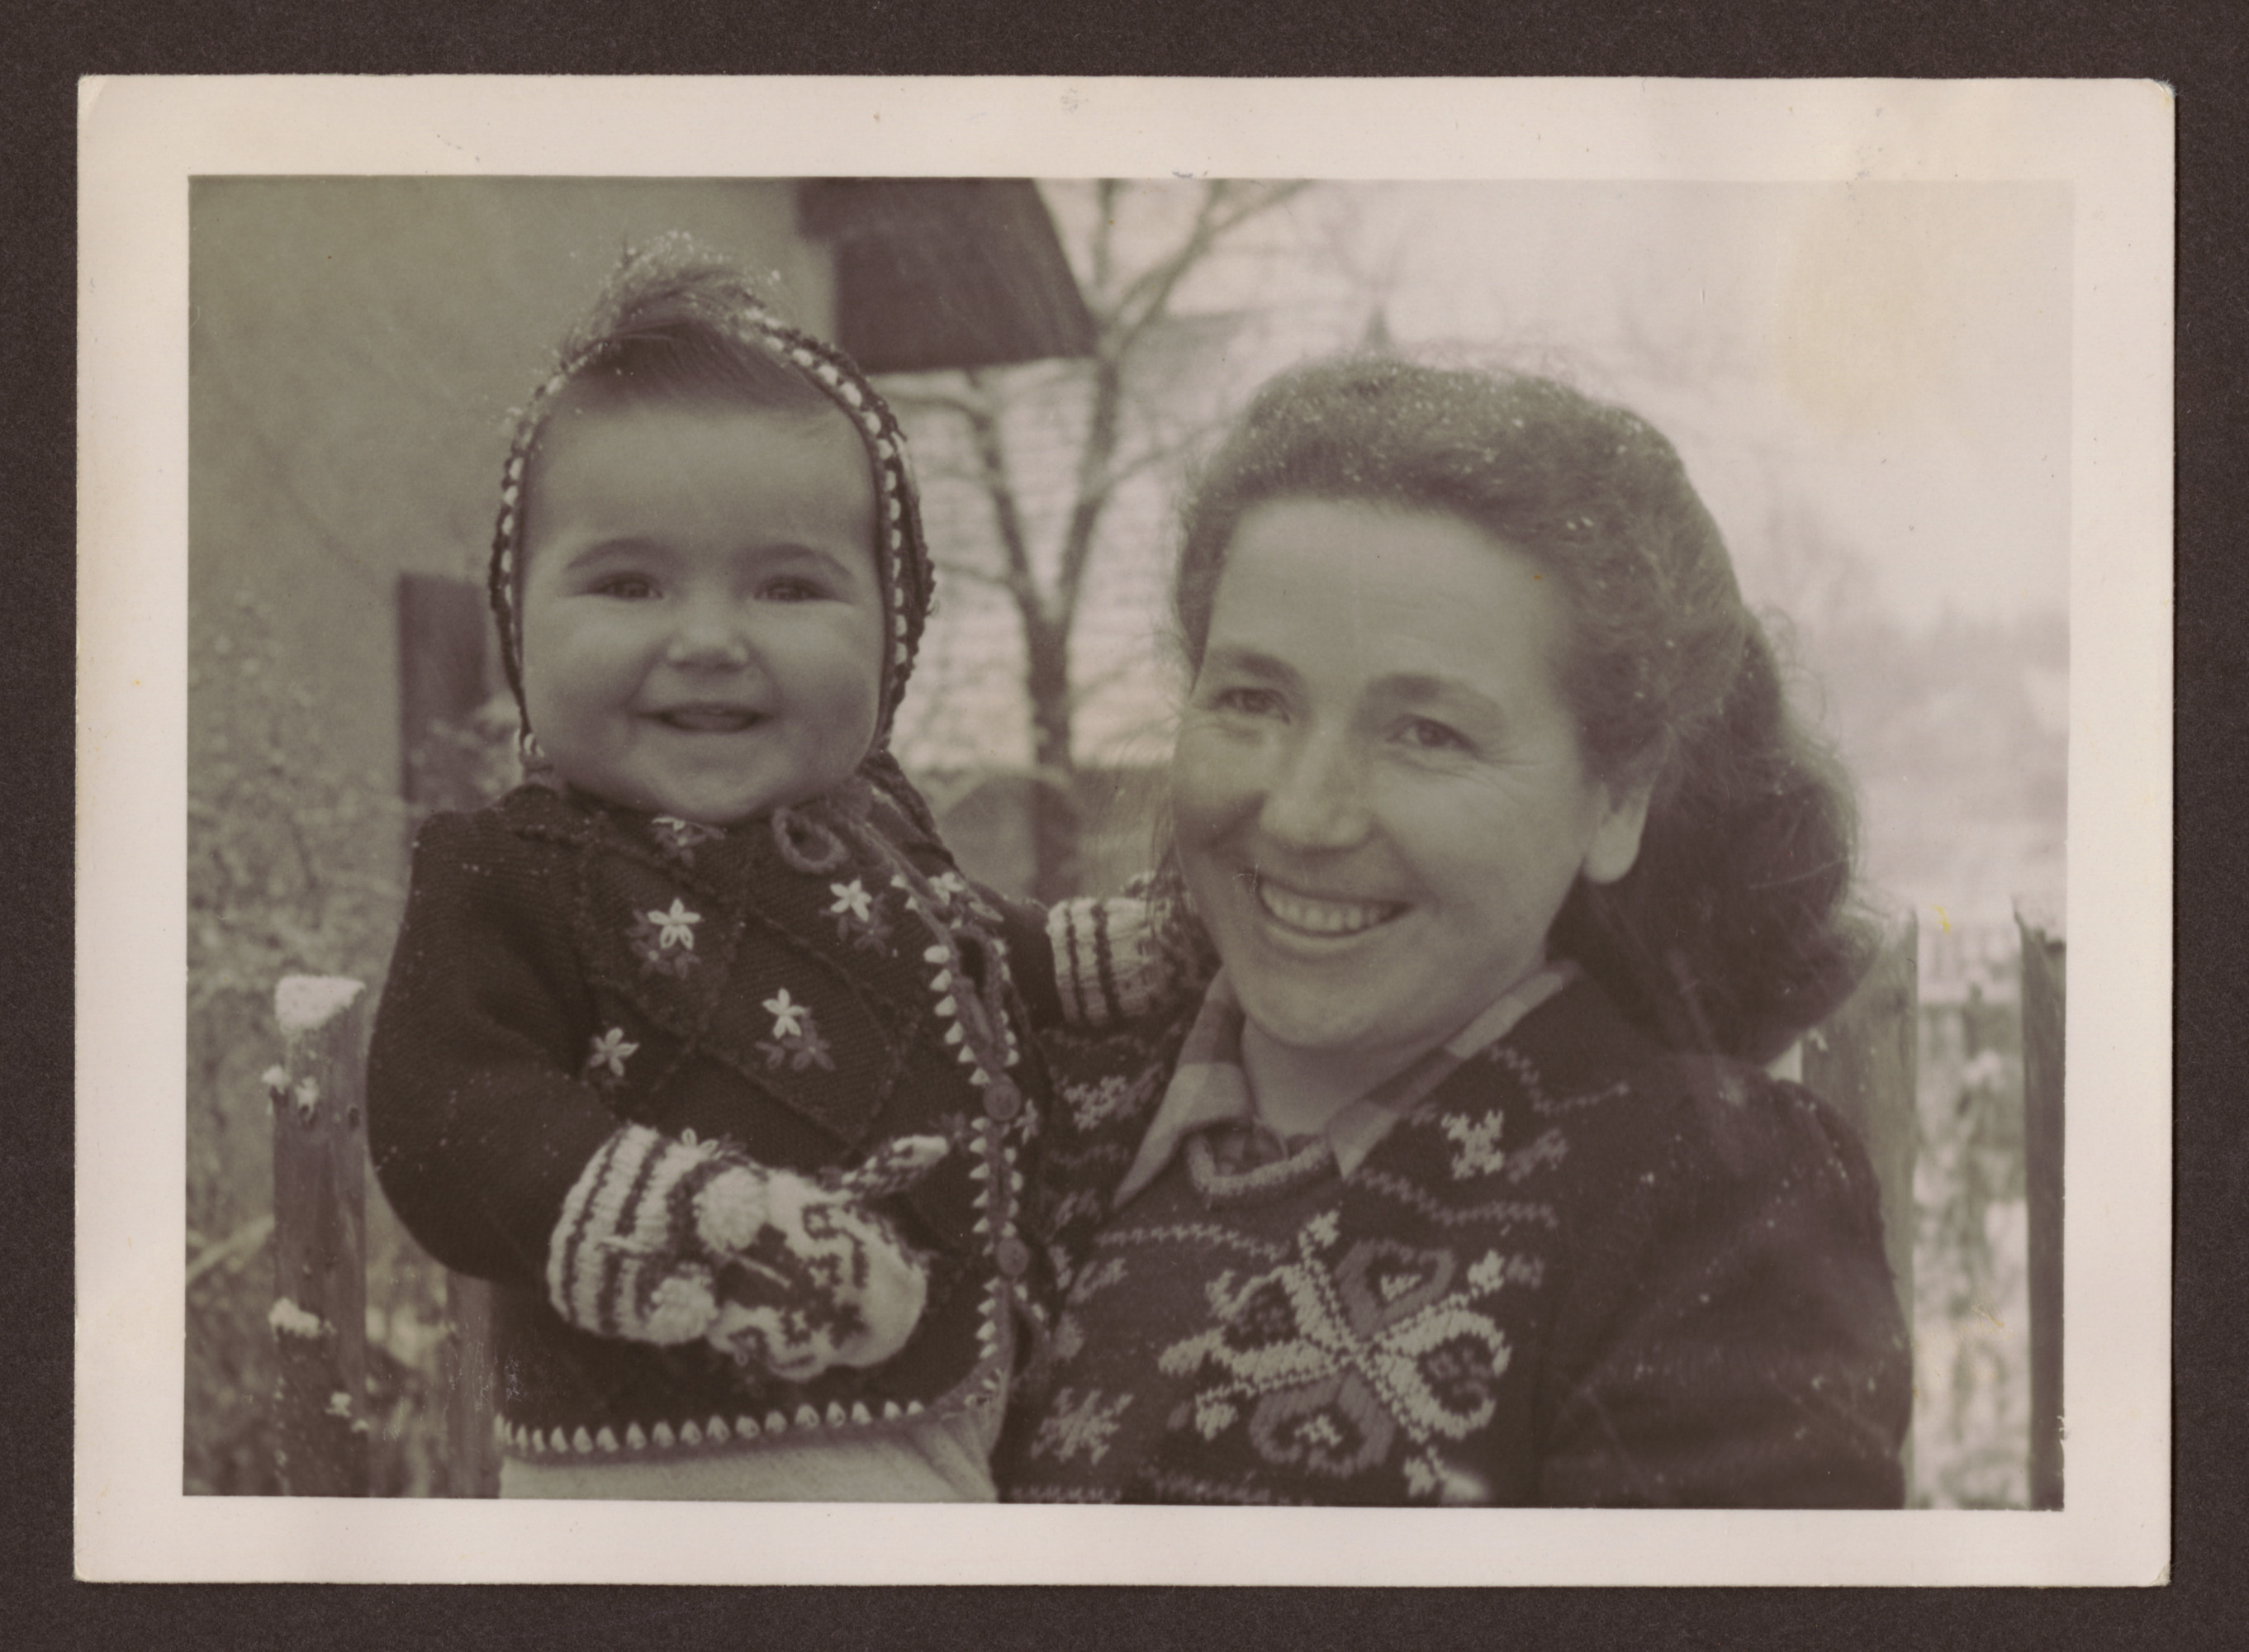 Close-up portrait of Miriam Glasrot and her daughter Nechama.  Manya and her husband Josef survived in hiding with the partisans.  After the war they came to Kazakstan to find Manya.